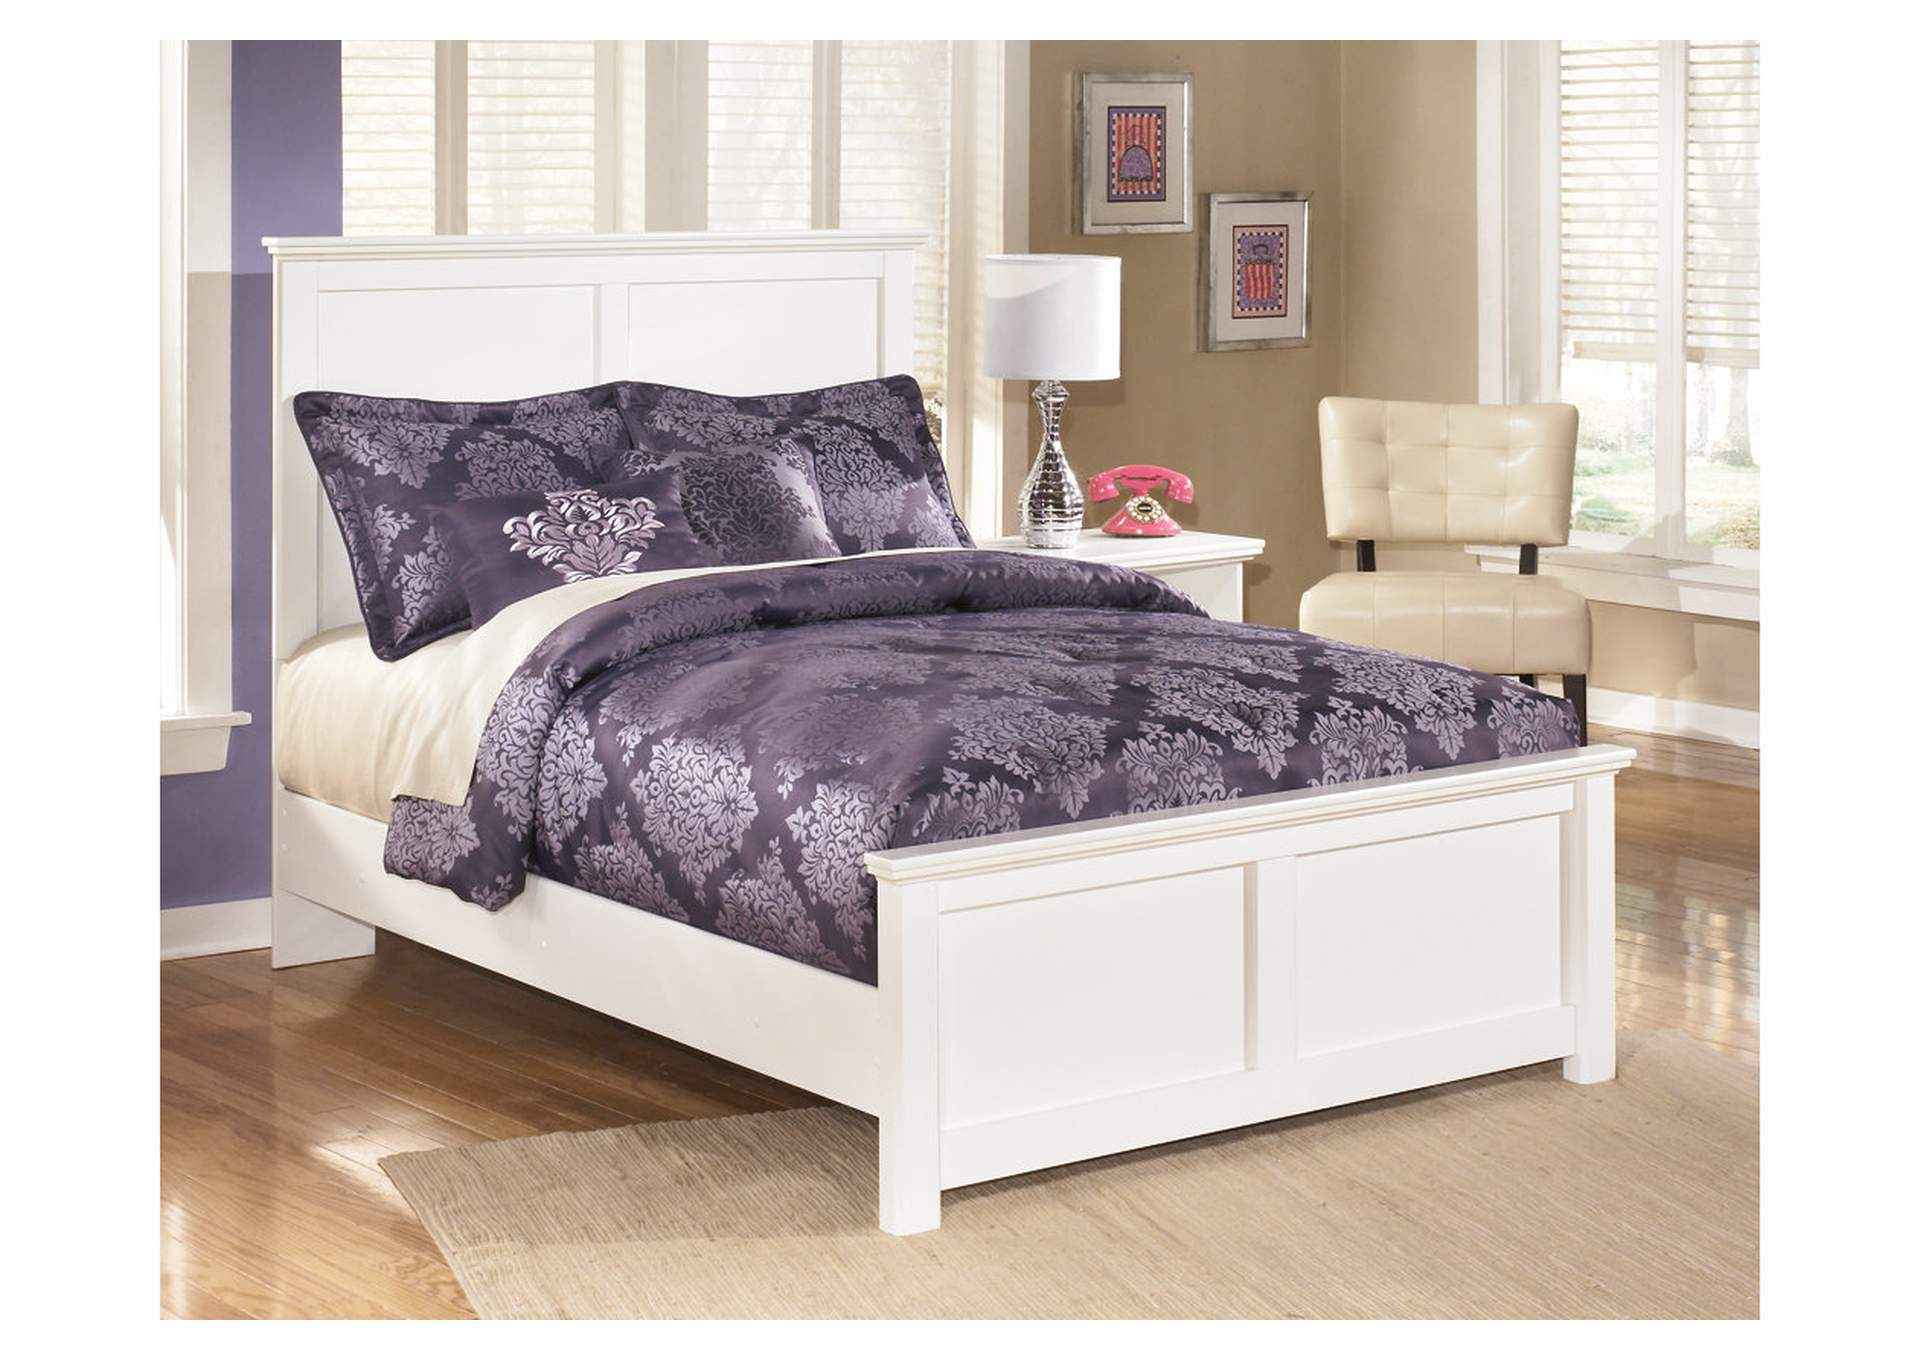 Bostwick Shoals Full Panel Bed,Signature Design By Ashley